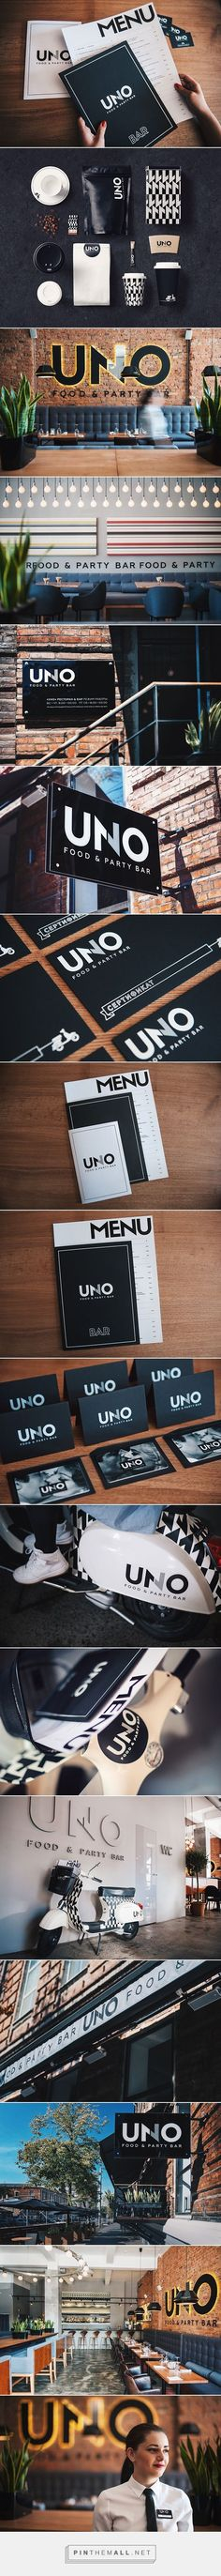 Uno Food and Party Bar on Behance Fivestar Branding – Design and Branding Agency & Inspiration Gallery Web Design, Visual Design, Logo Design, Website Design, Brand Identity Design, Graphic Design Branding, Cafe Design, Design Agency, Cafe Branding